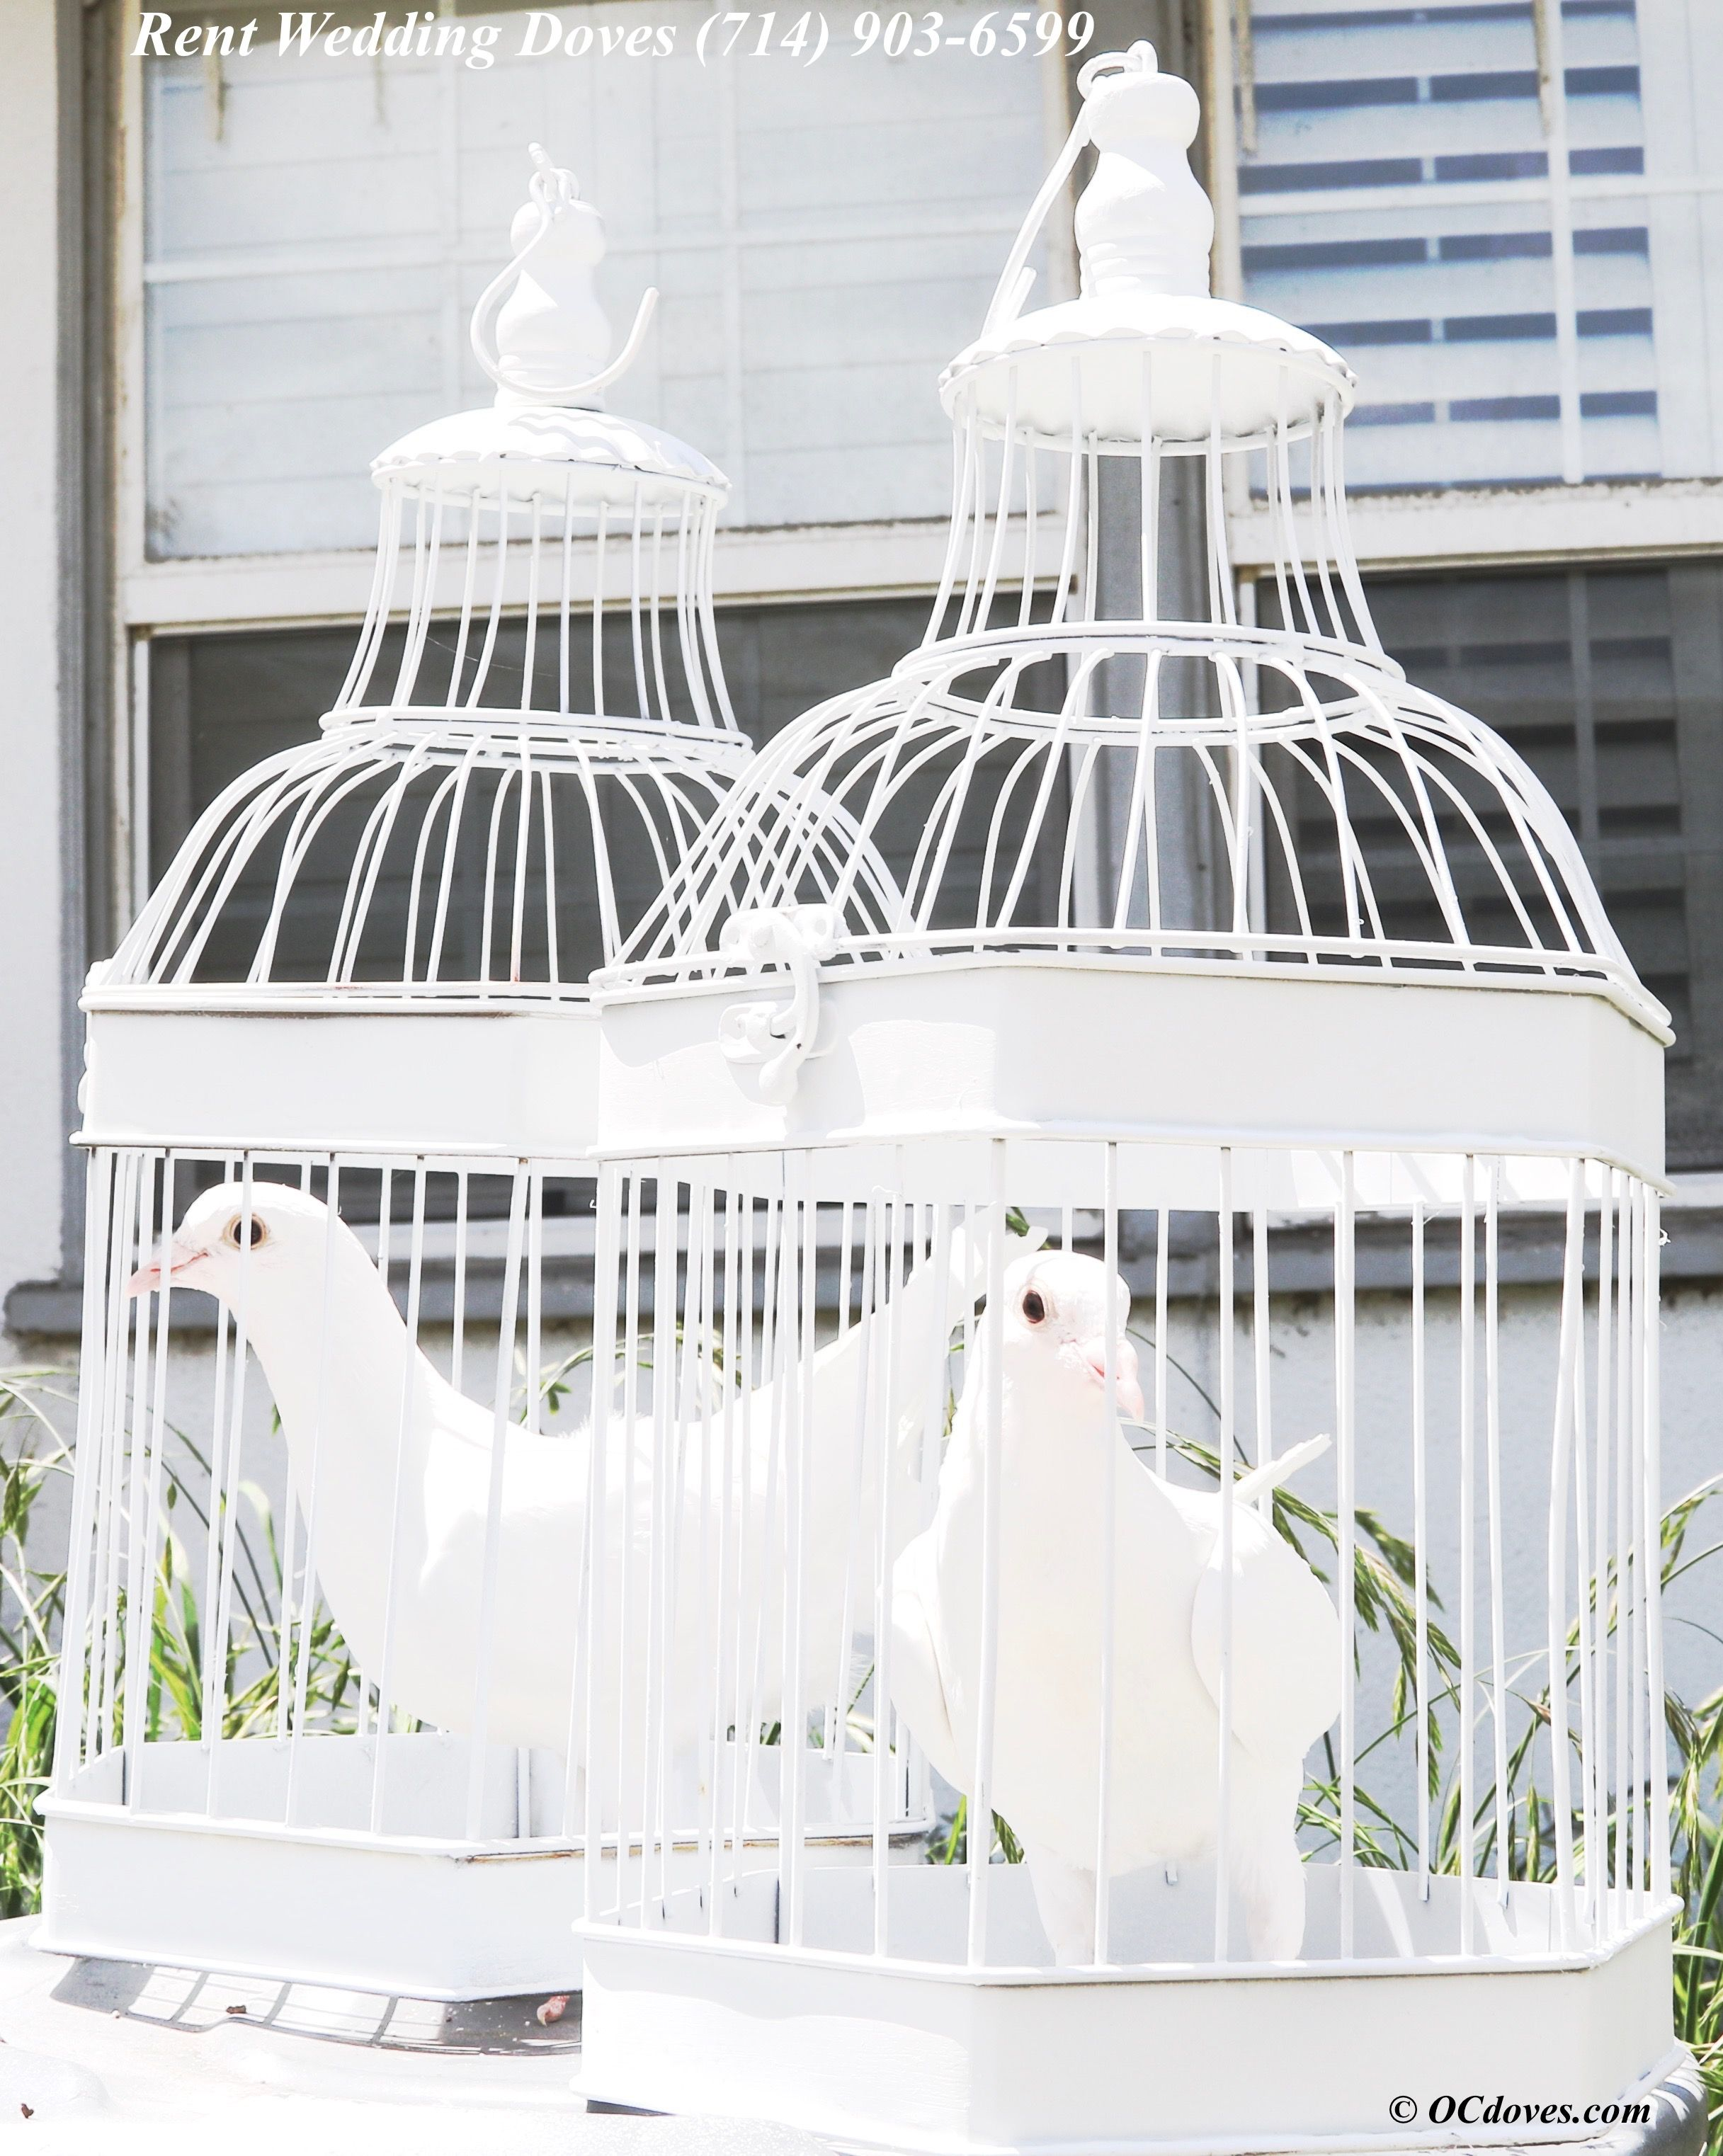 https://OCdoves.com Newport Coast White Dove Release - Laguna Hills, Huntington Beach, Anaheim, Yorba Linda, Beverly Hills, Bel Air, Hollywood, Glendale, Burbank, Pasadena, Palos Verdes, Long Beach, Seal Beach, Corna Del Mar, San Diego, Riverside, Texas, Dallas, Houston, San Francisco, New York Wedding Rental Services l (7l4) 903-6599